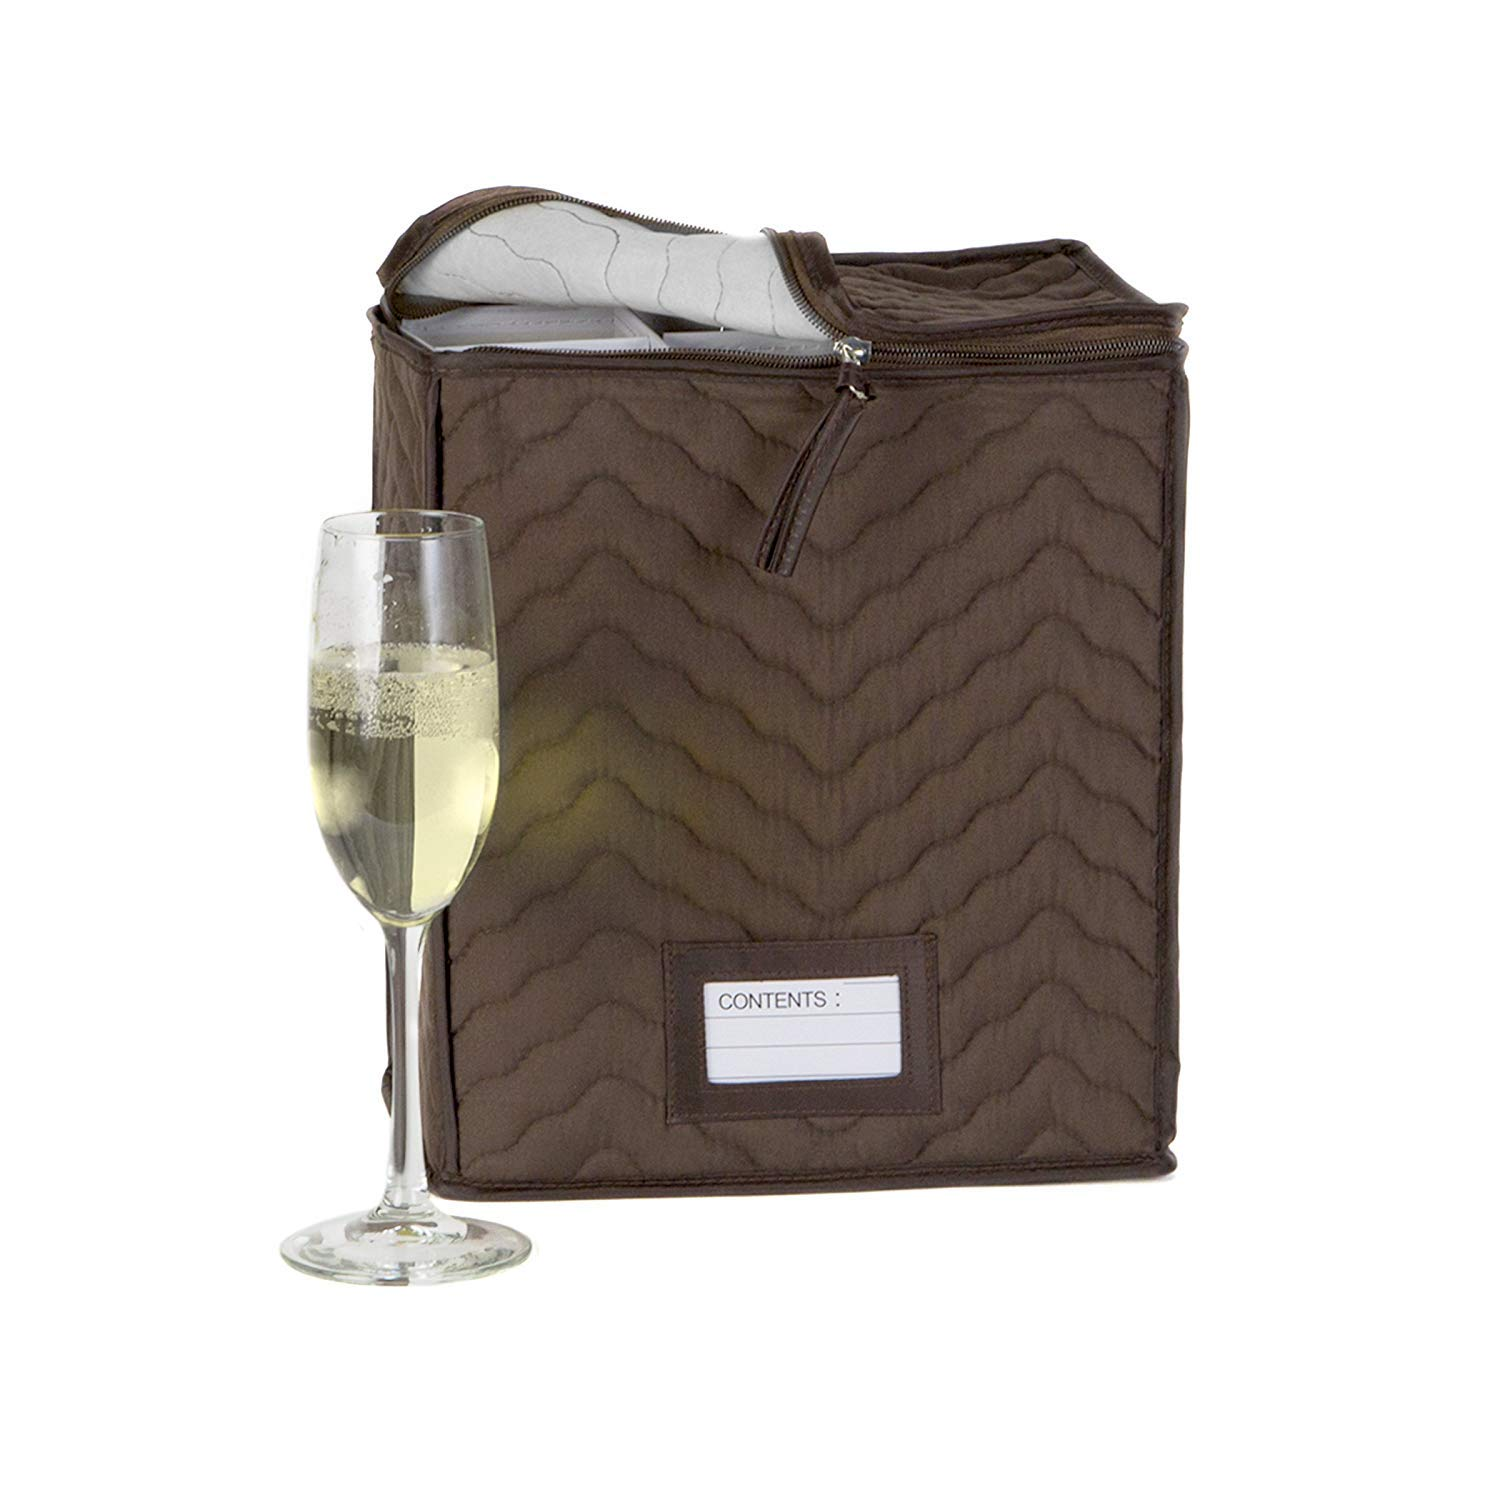 """Champagne Flute Glass Goblets Deluxe Storage Chest - Holds 6 Stemware Glasses - Quilted Microfiber - Protect Your Valuable Glassware from Dings, Scratches And Cracks -Brown -11""""X 9.25""""X 6"""""""